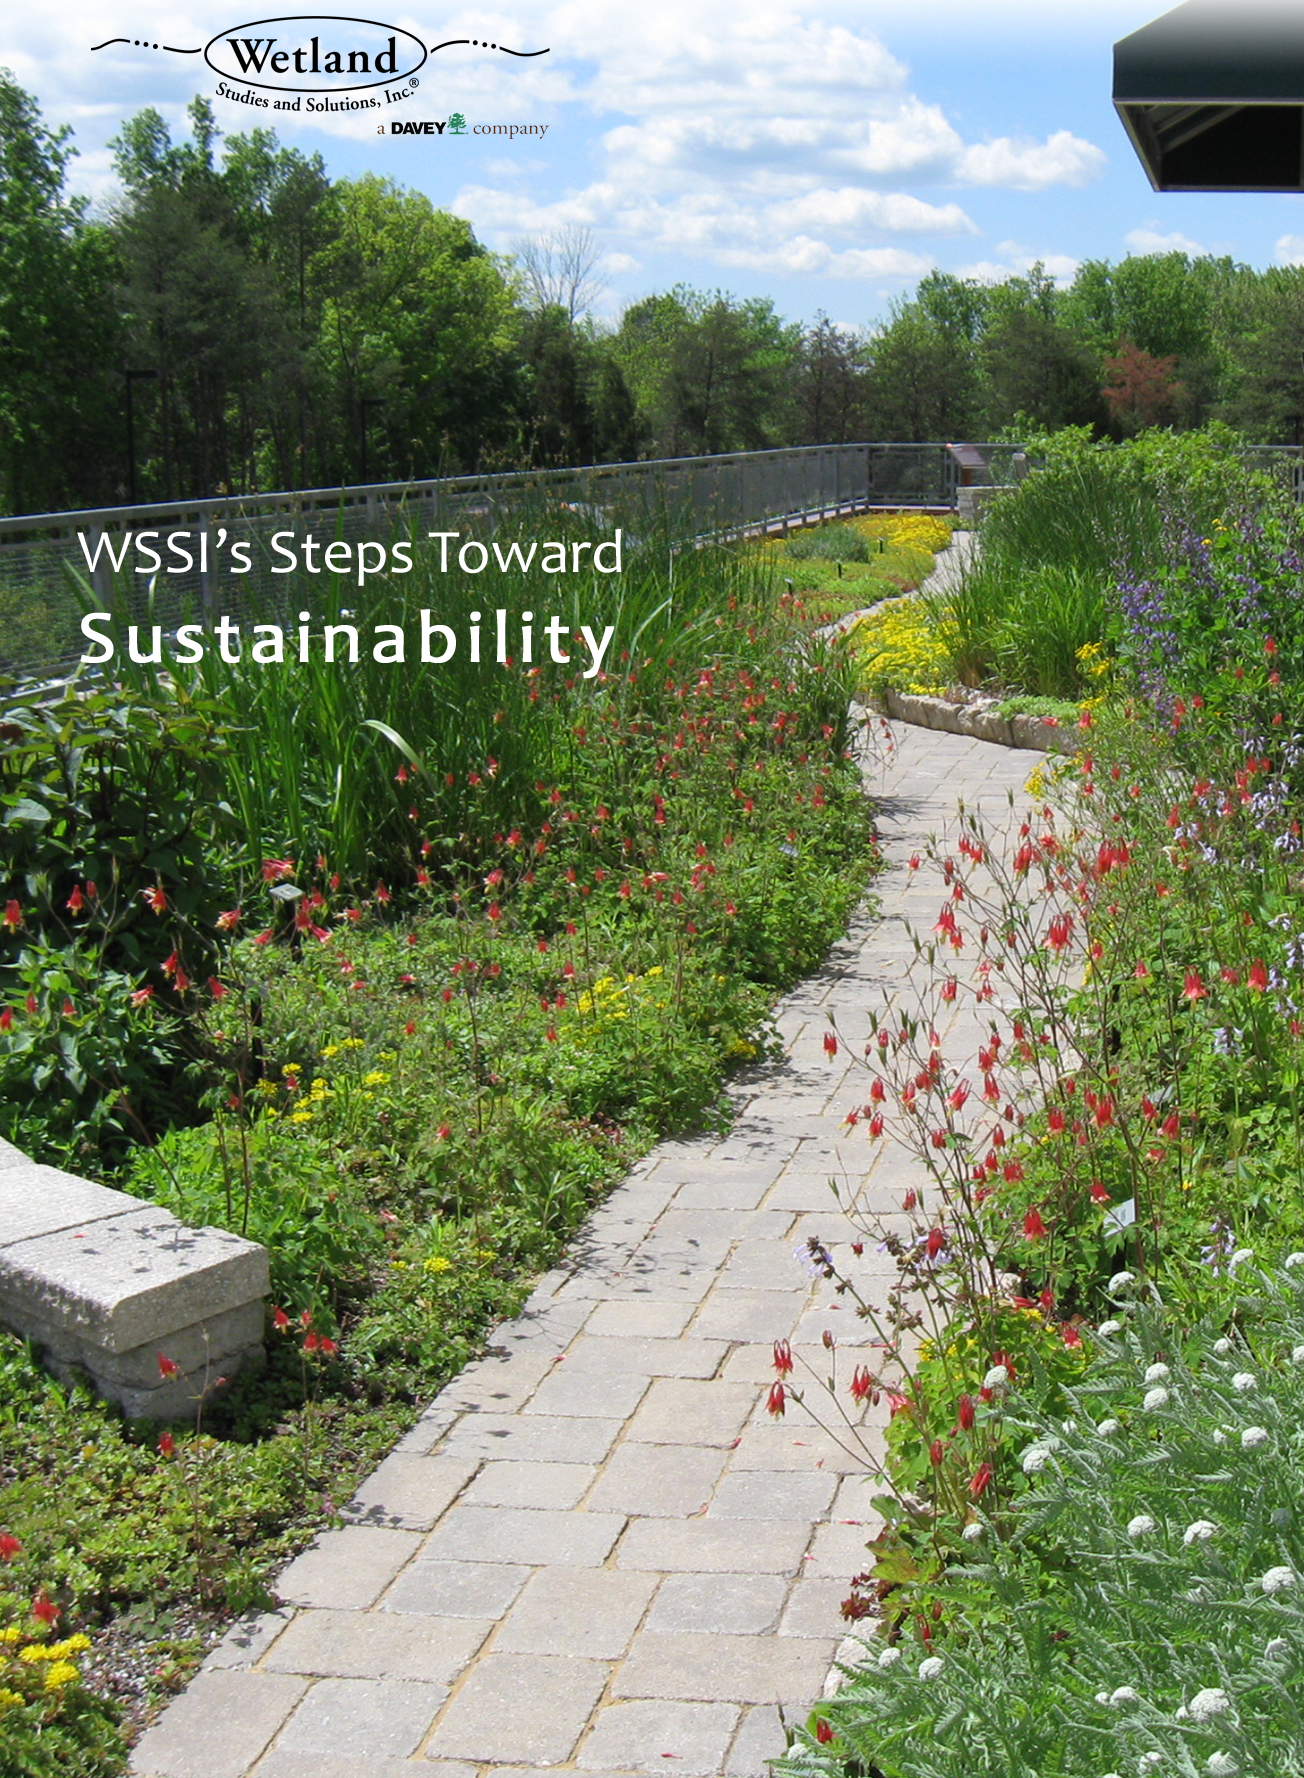 WSSI's LID and LEED Sustainability Brochure (click to open pdf)